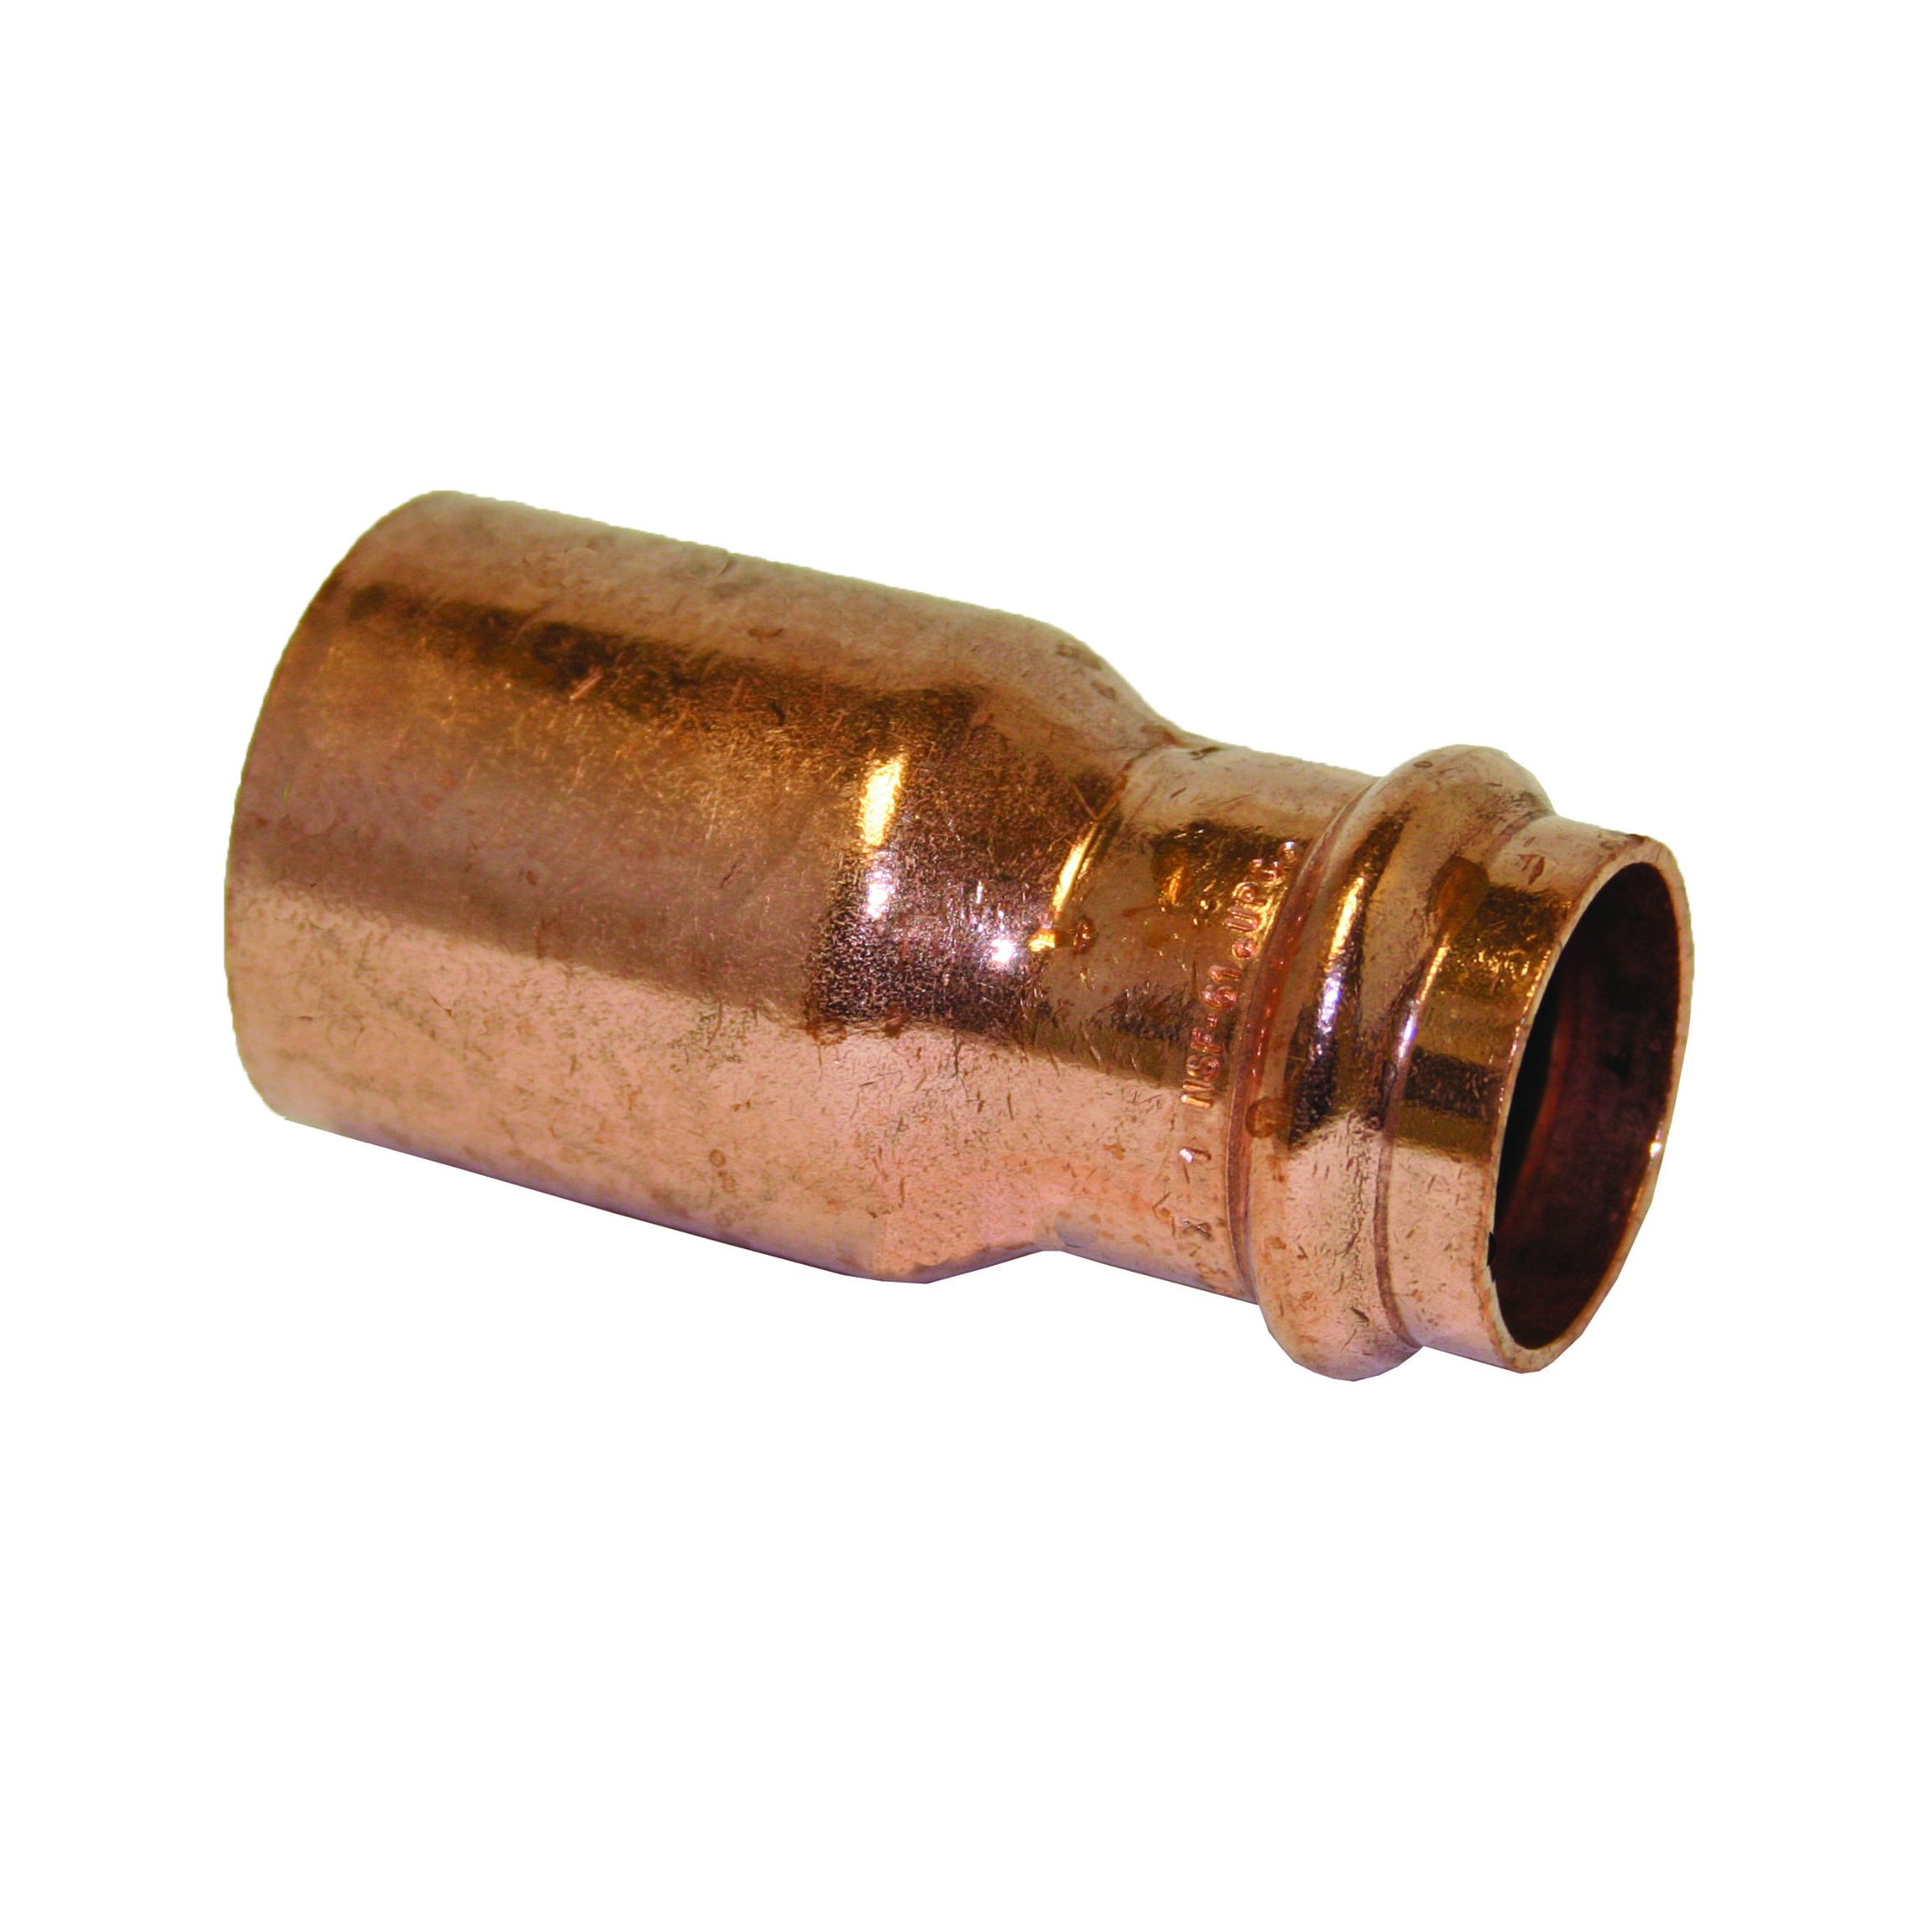 EPC Apollopress® 10075152 Copper Small Diameter Press Reducer, 2 in x 1-1/4 in, Fitting x Copper, Domestic